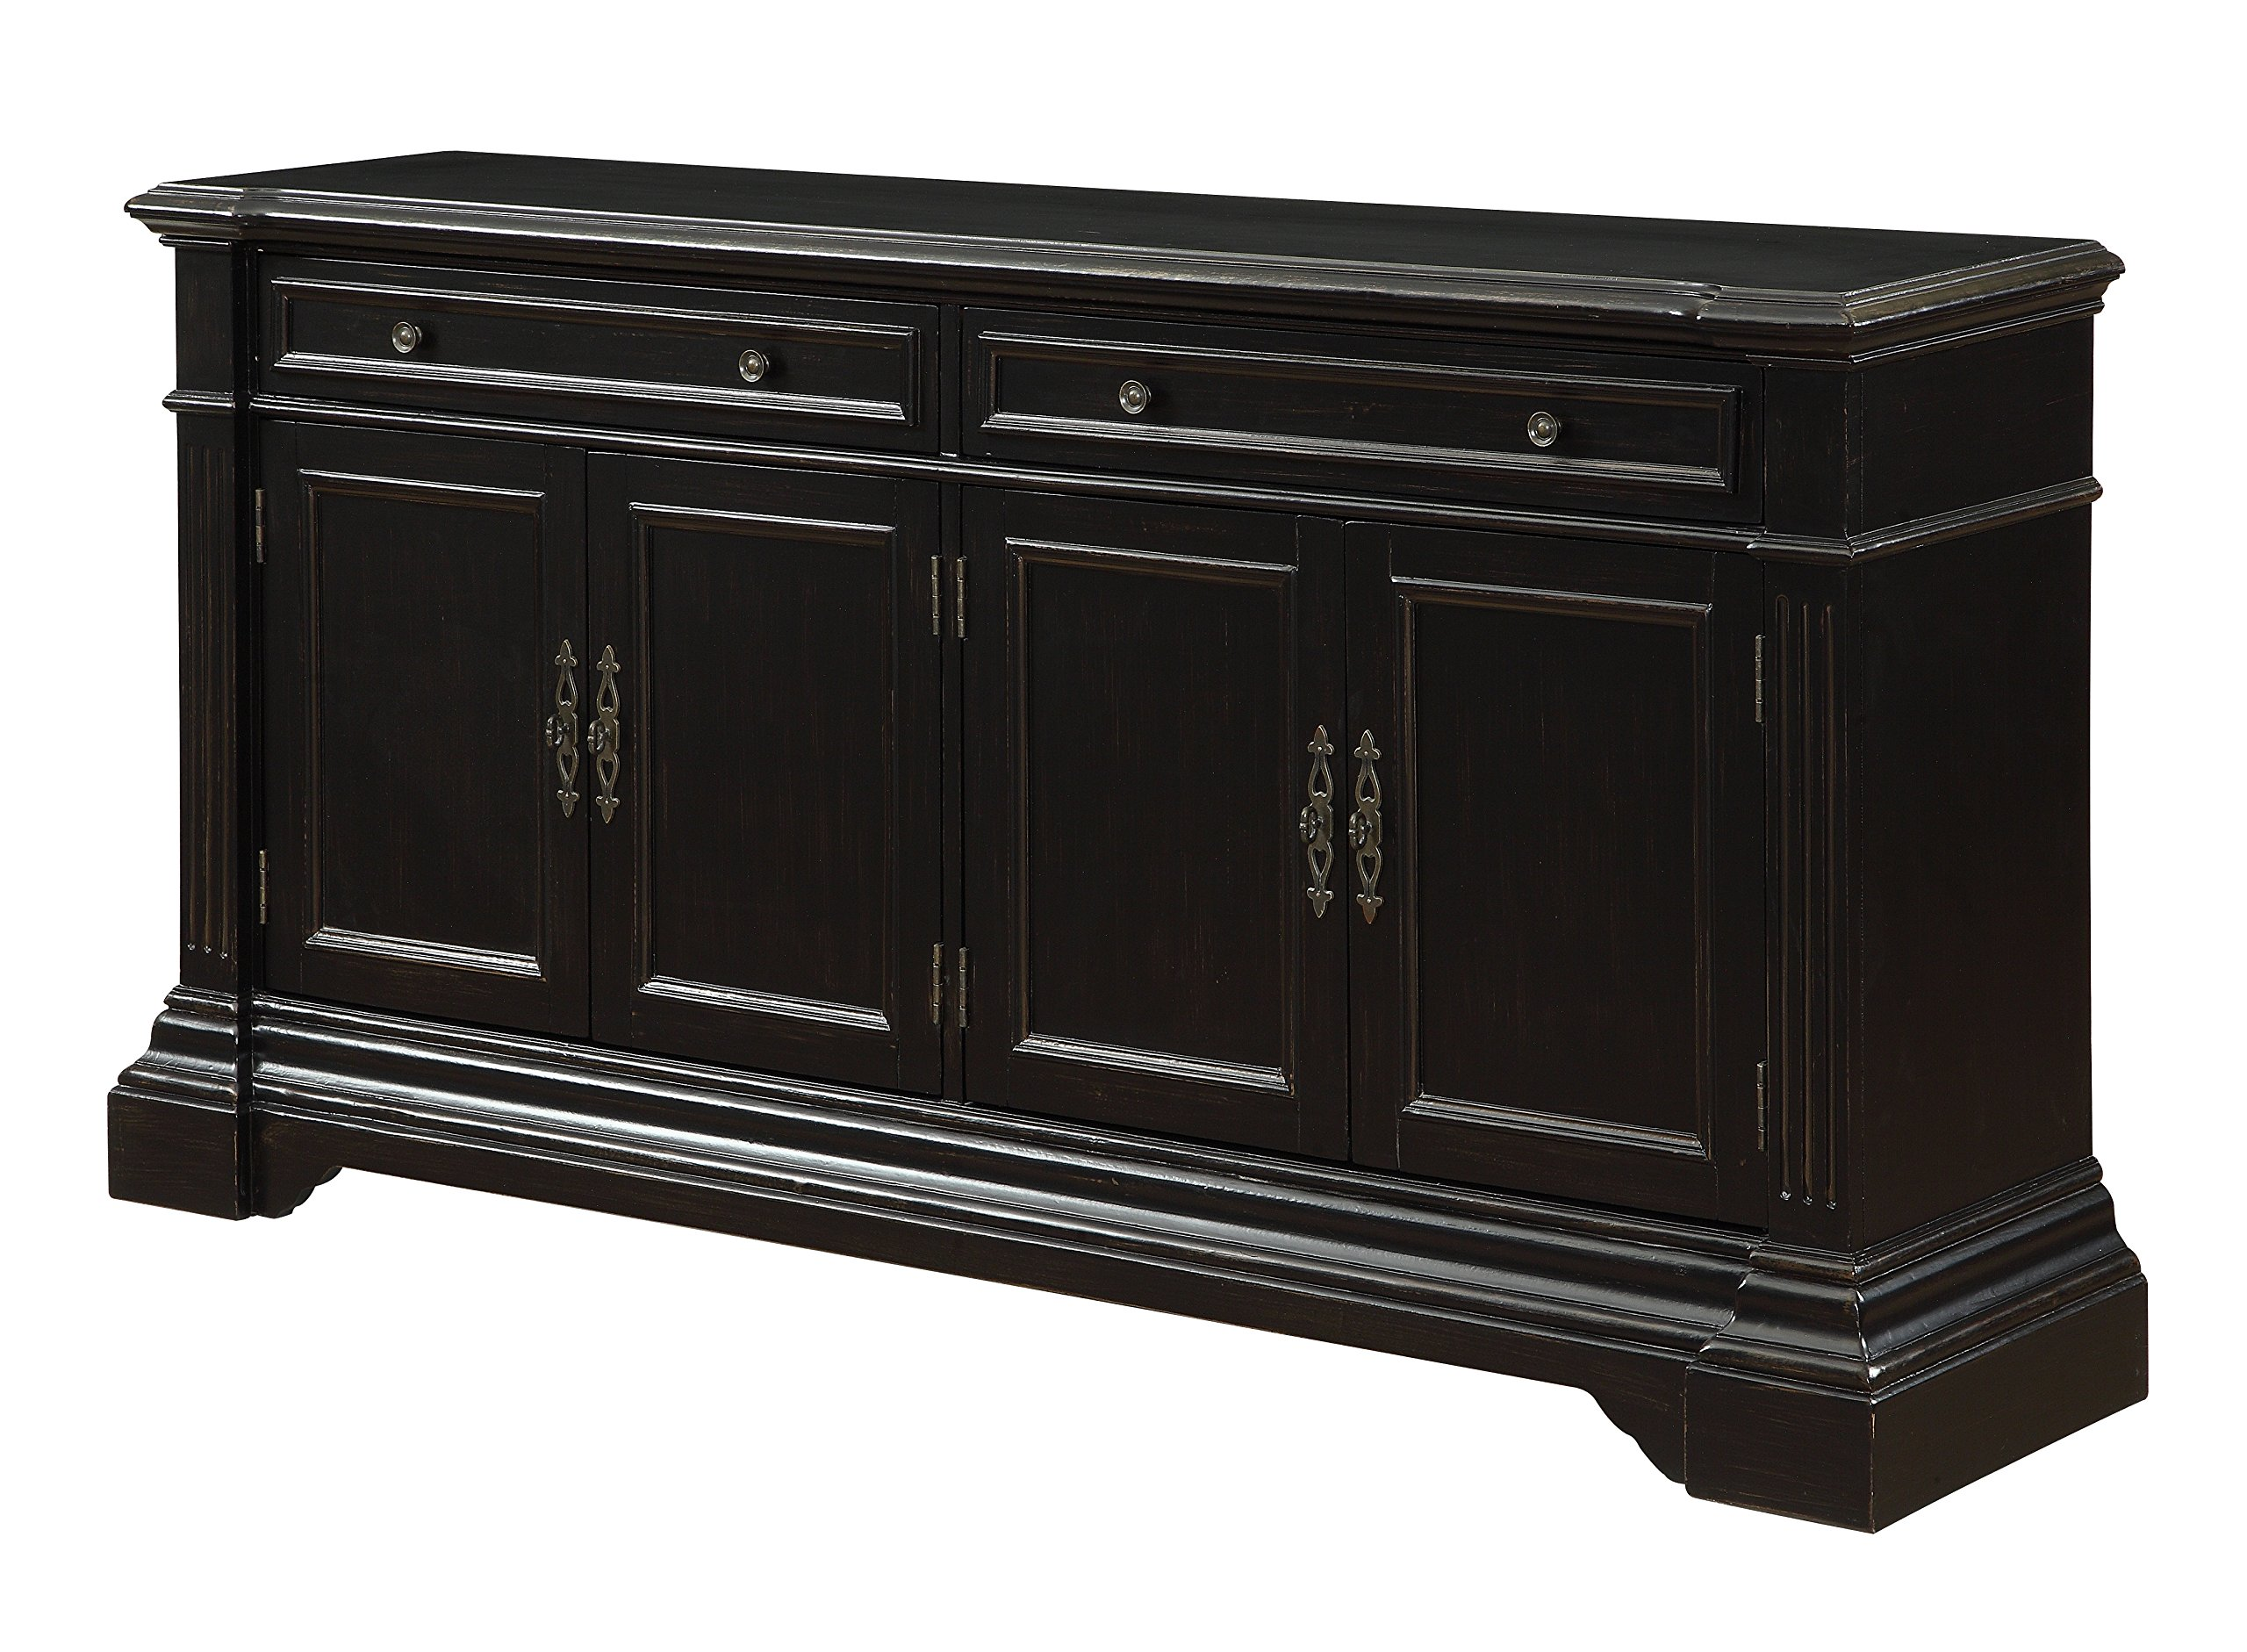 Treasure Trove Accents Two Drawer Four Door Media Credenza, 68.5'' x 16'' x 35'' by Treasure Trove Accents